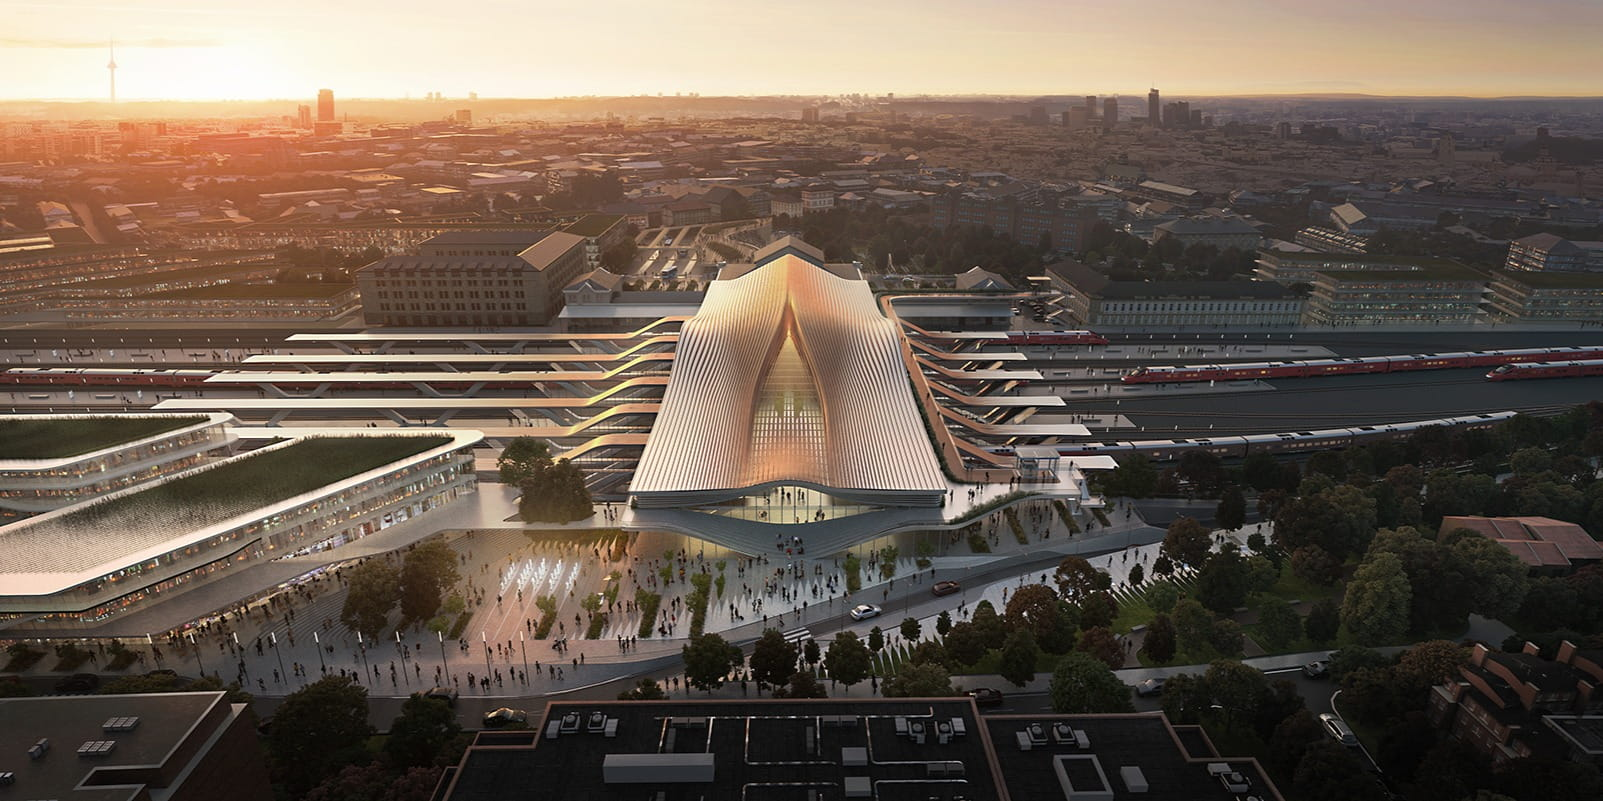 ZHA has won an international competition for the redevelopment of the Vilnius railway station in Lithuania